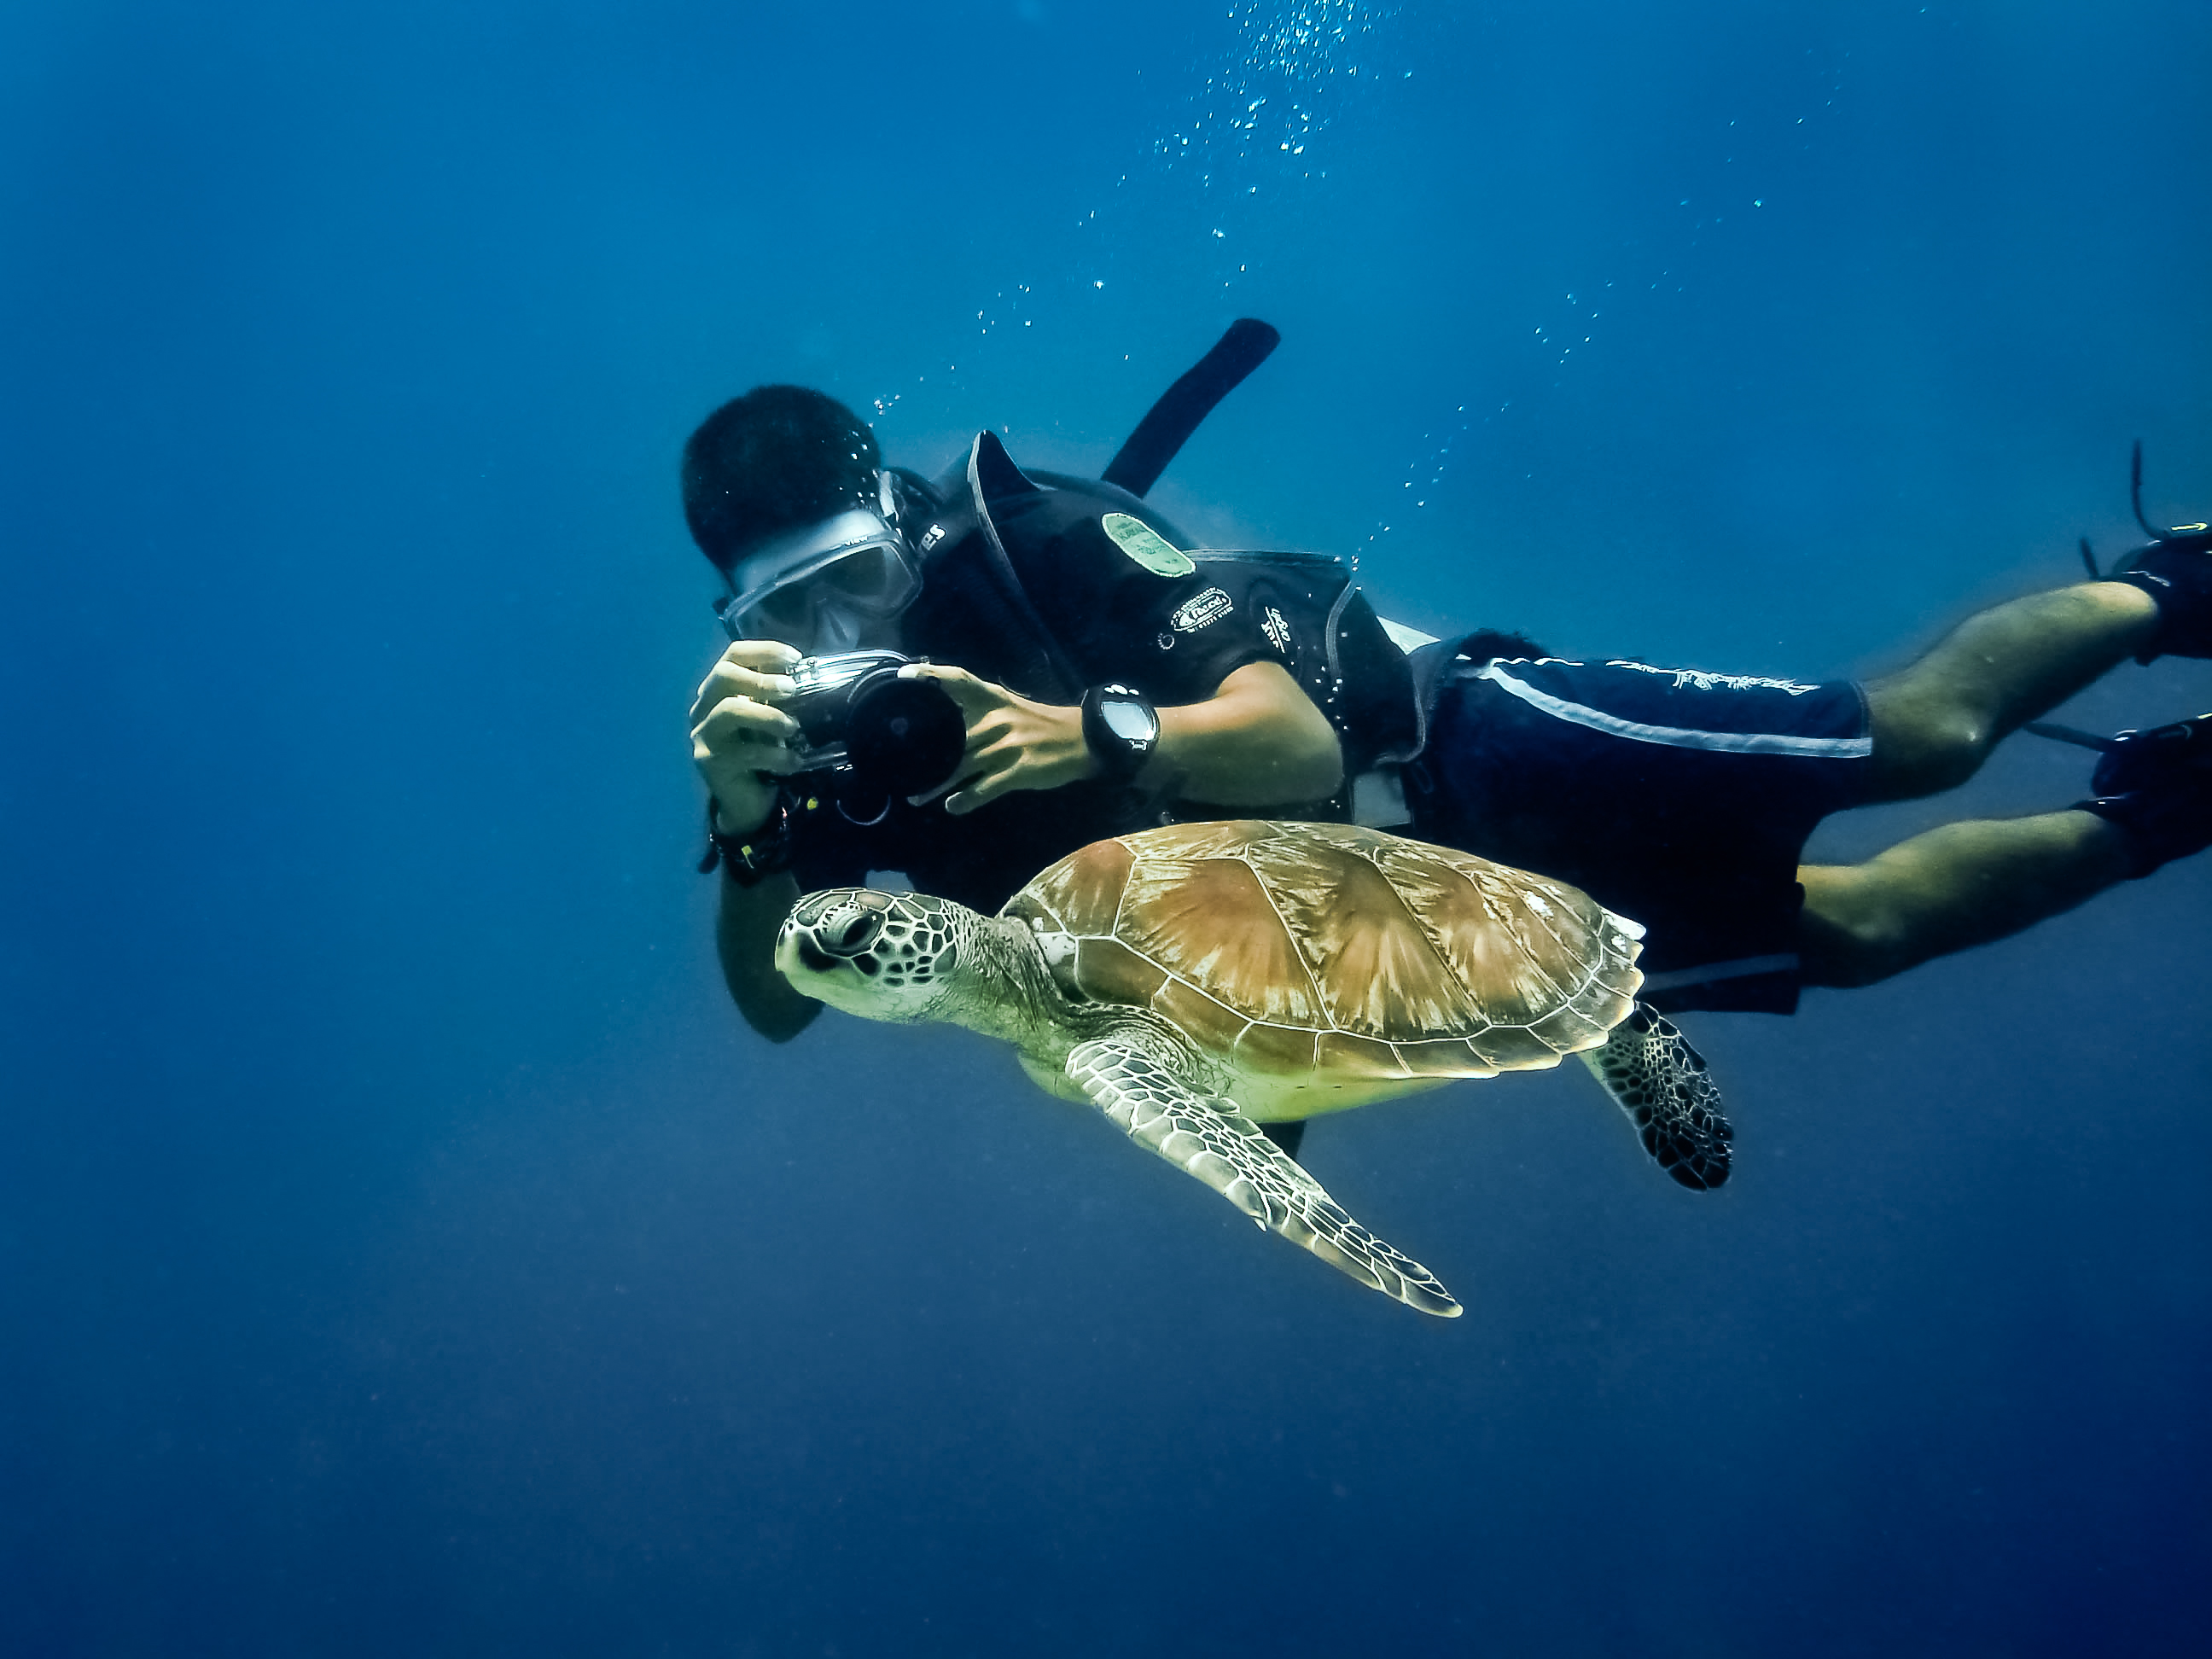 Snorkeling with turtle in Blue bay